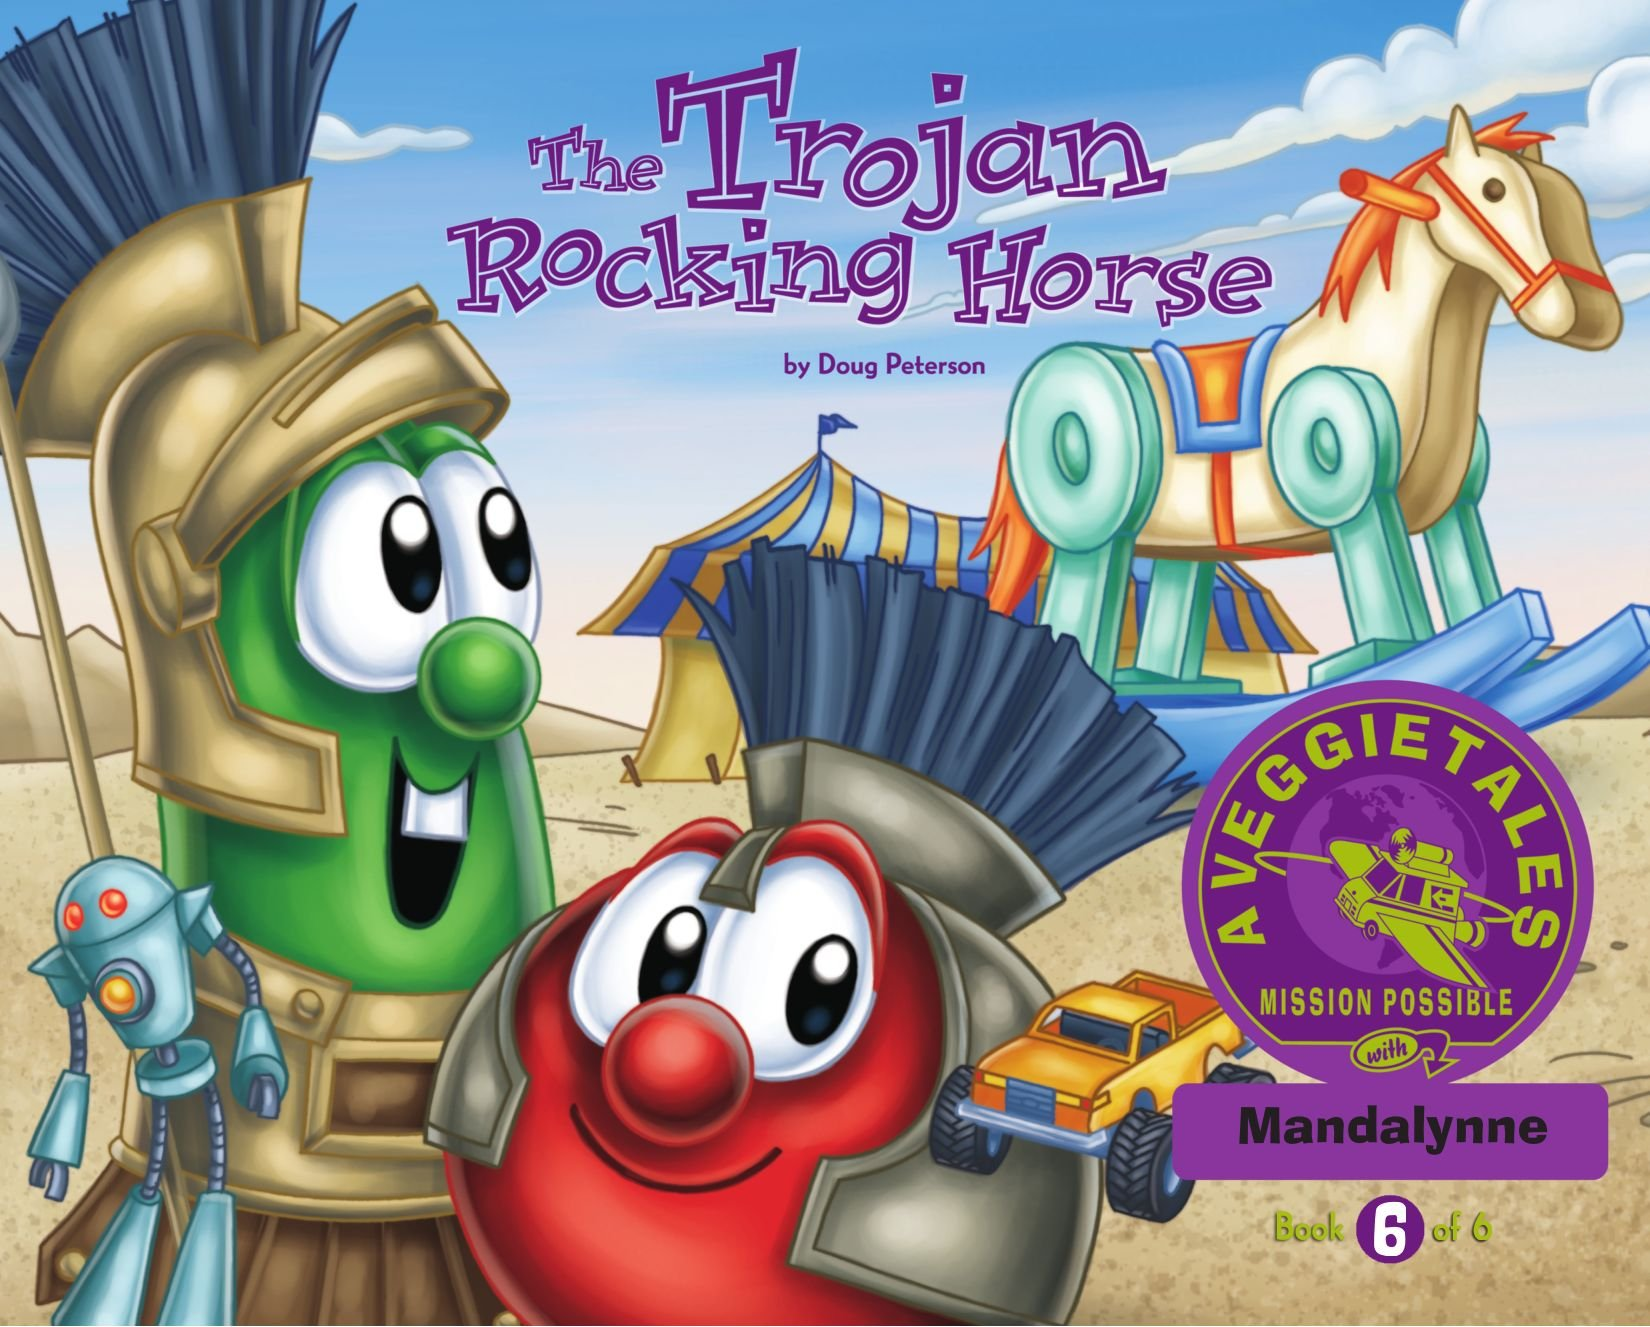 The Trojan Rocking Horse - VeggieTales Mission Possible Adventure Series #6: Personalized for Mandalynne (Girl) ebook